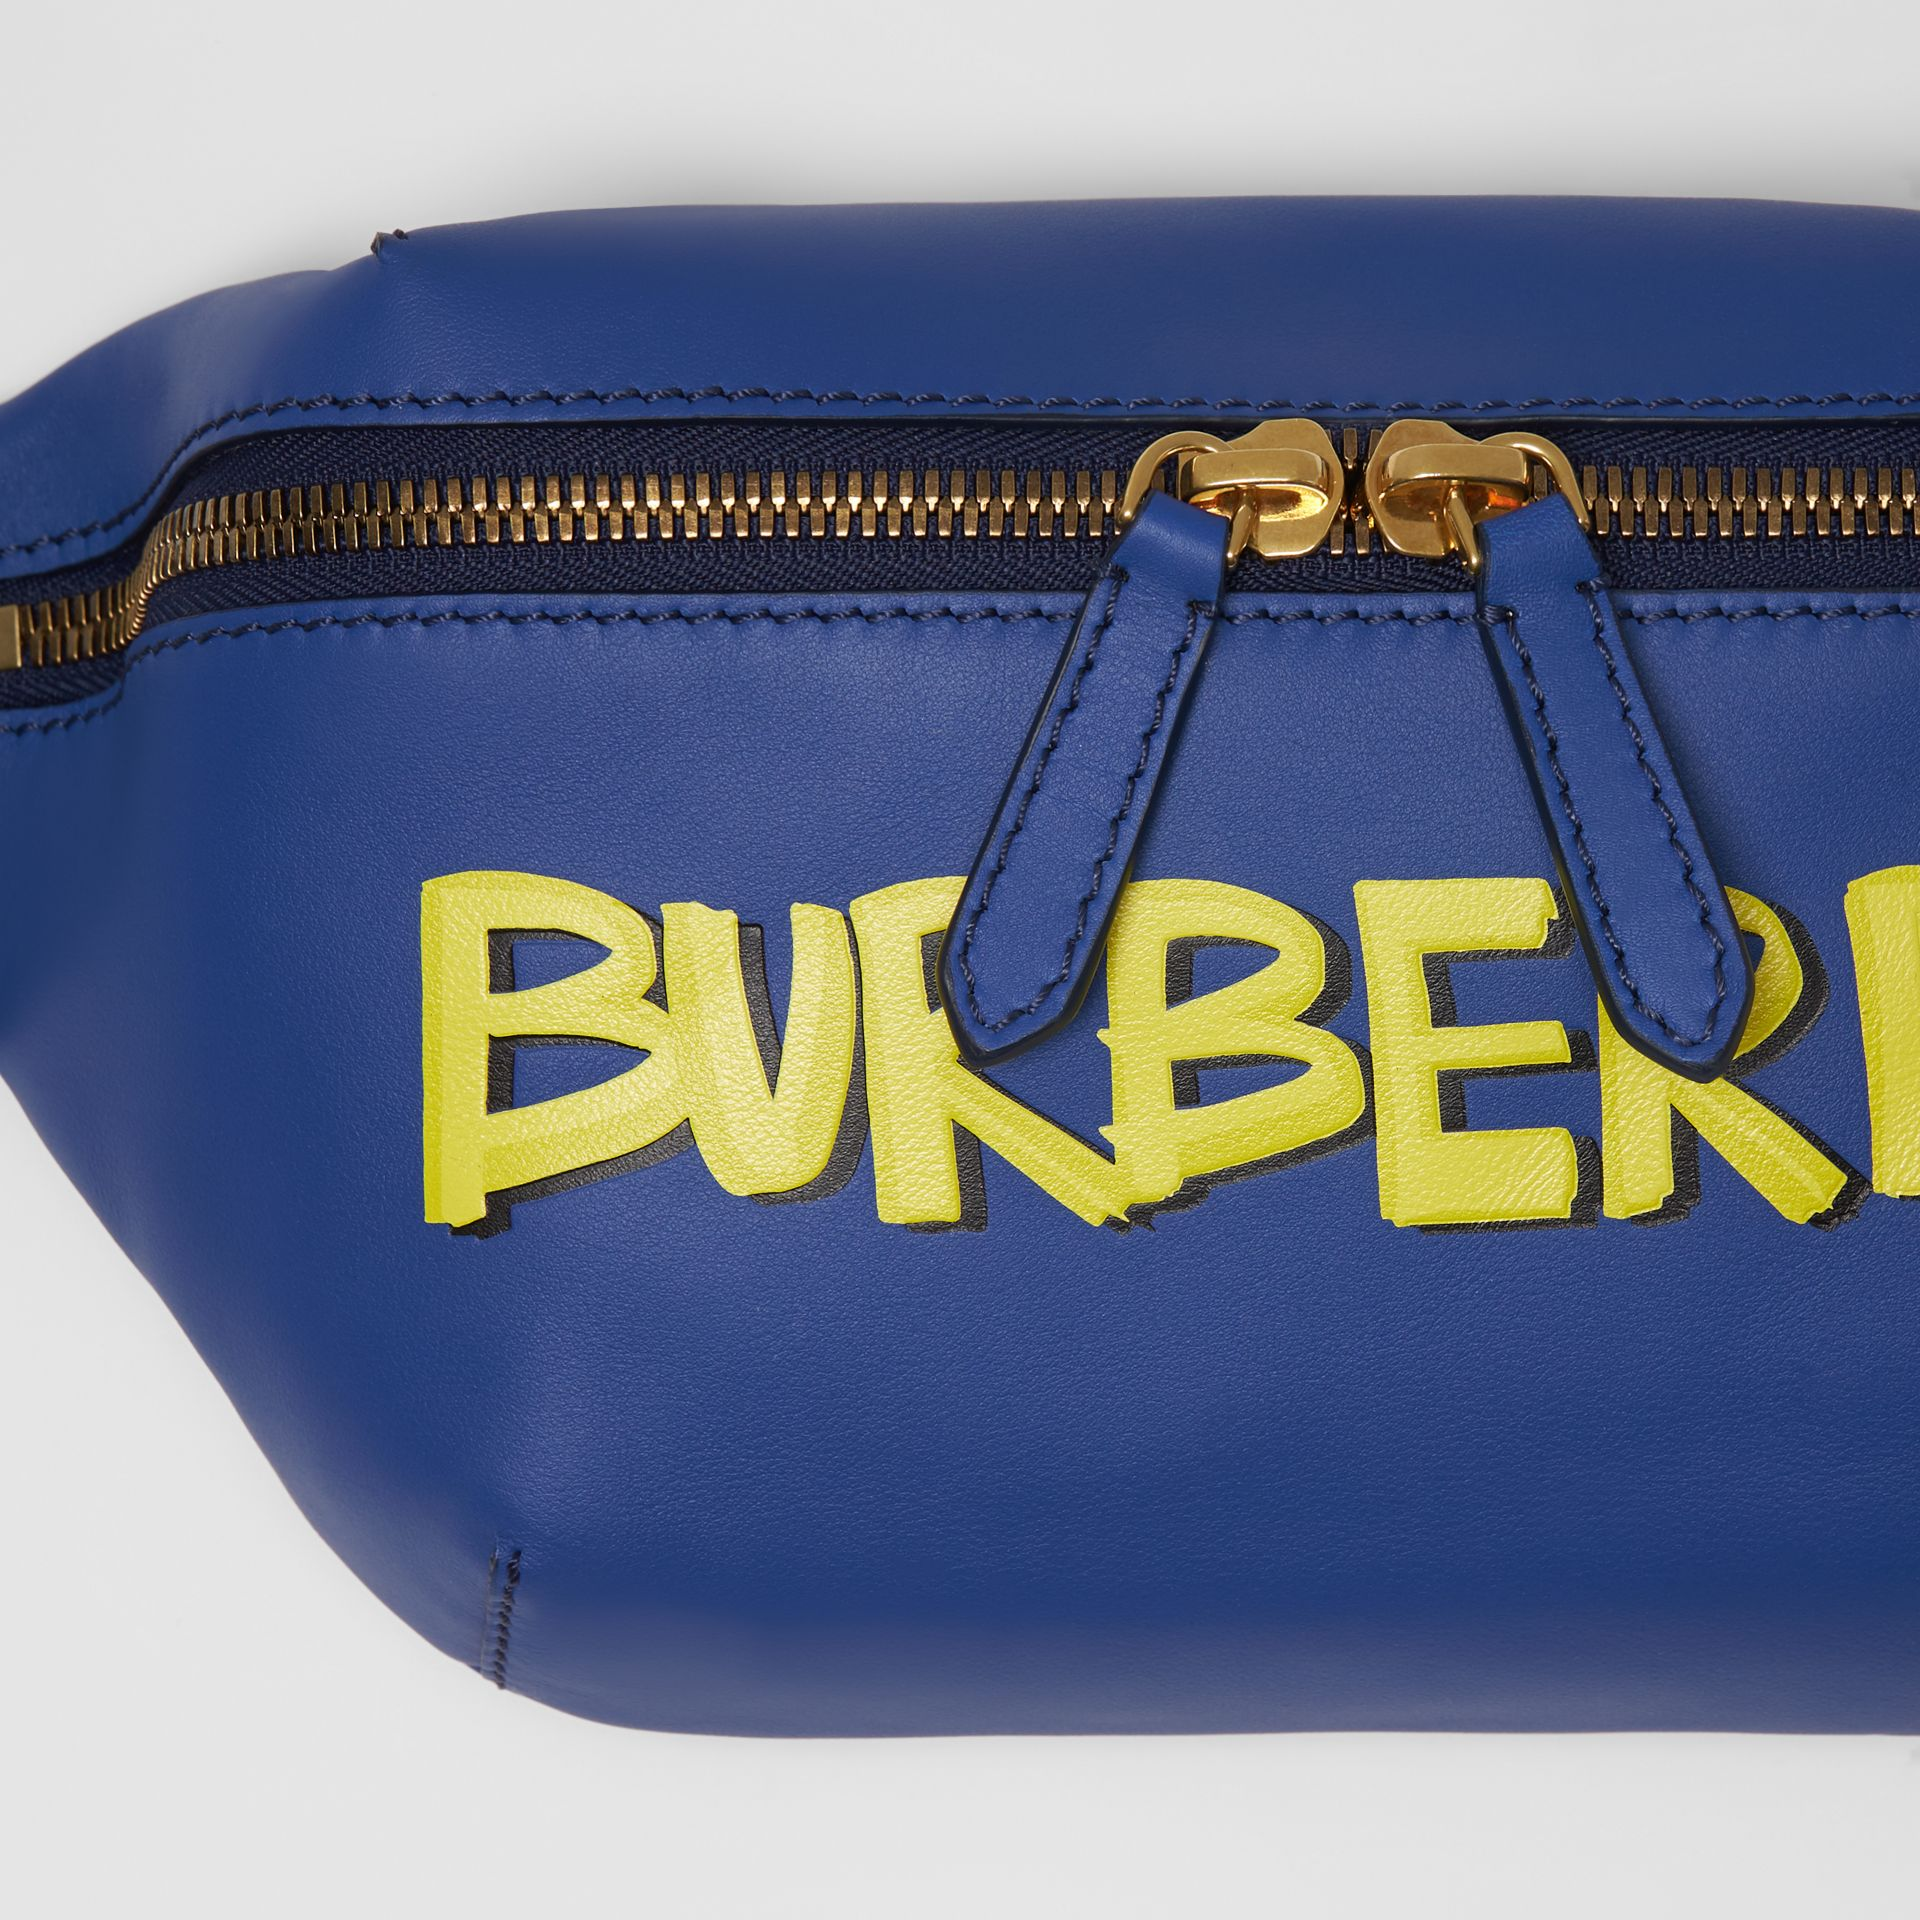 Medium Graffiti Print Leather Bum Bag in Denim Blue | Burberry United Kingdom - gallery image 1